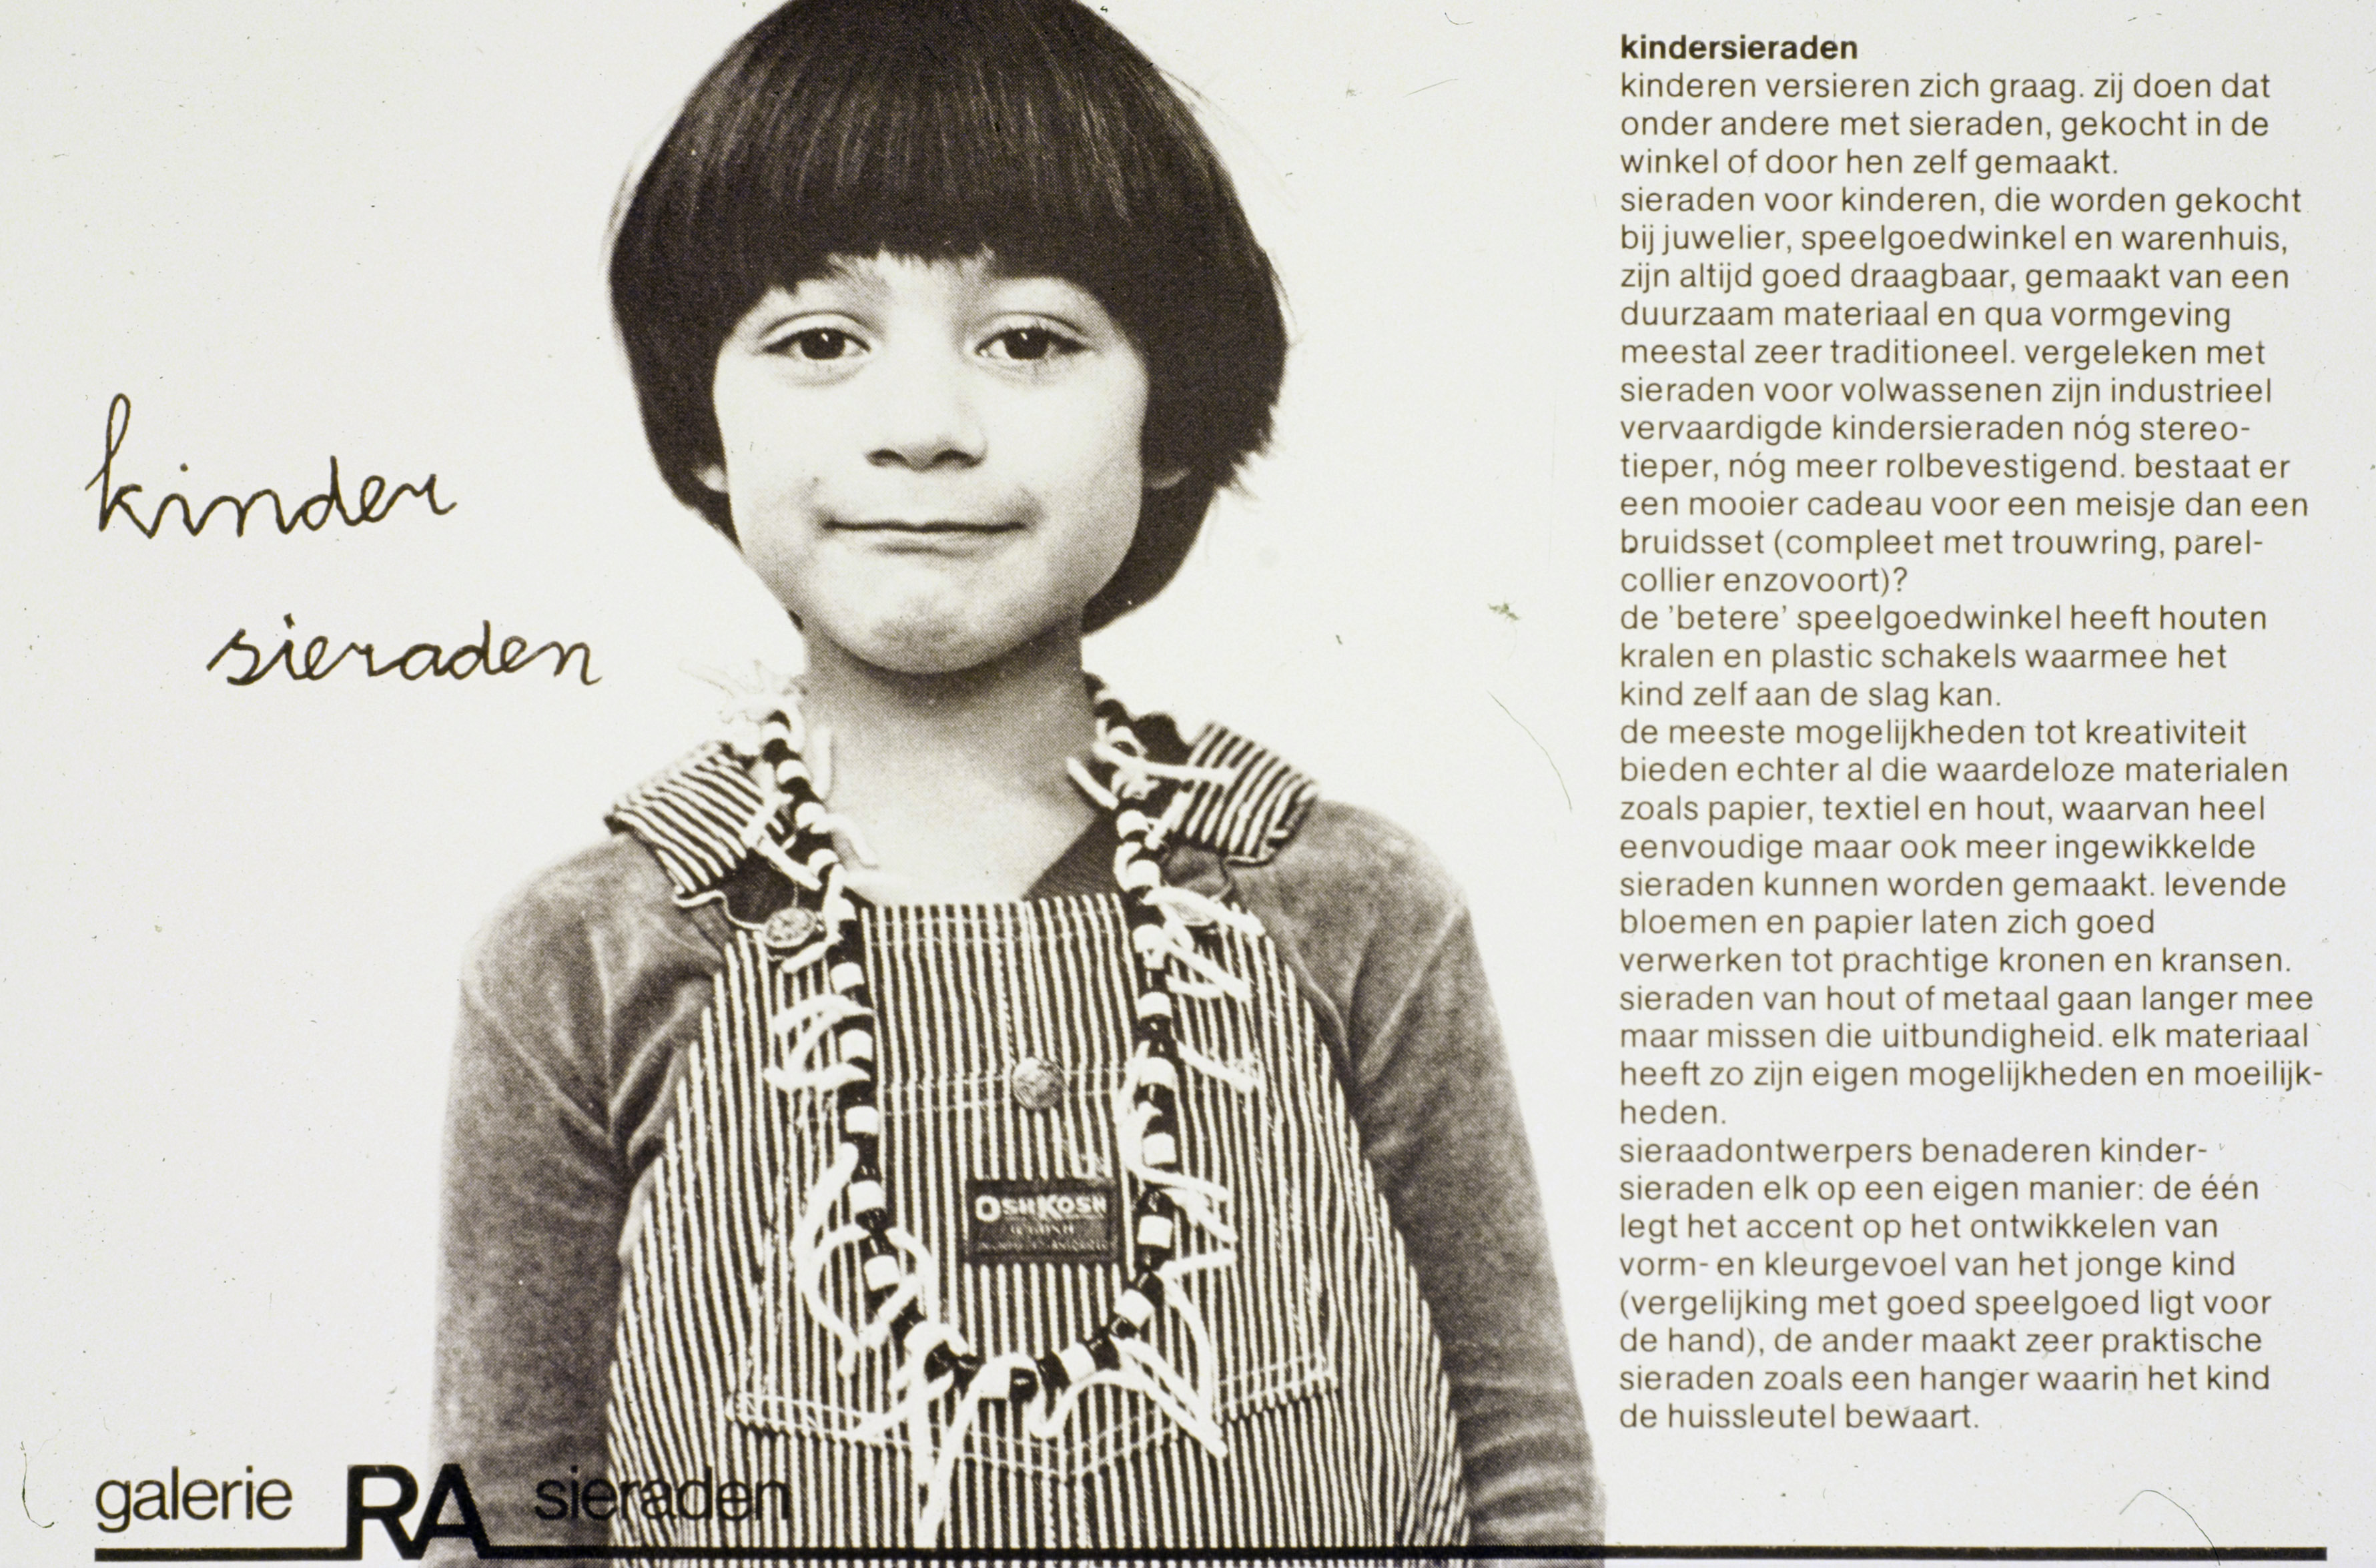 Children-jewellery, jewellery for children by designers and collected from shops, 1979, Galerie Ra